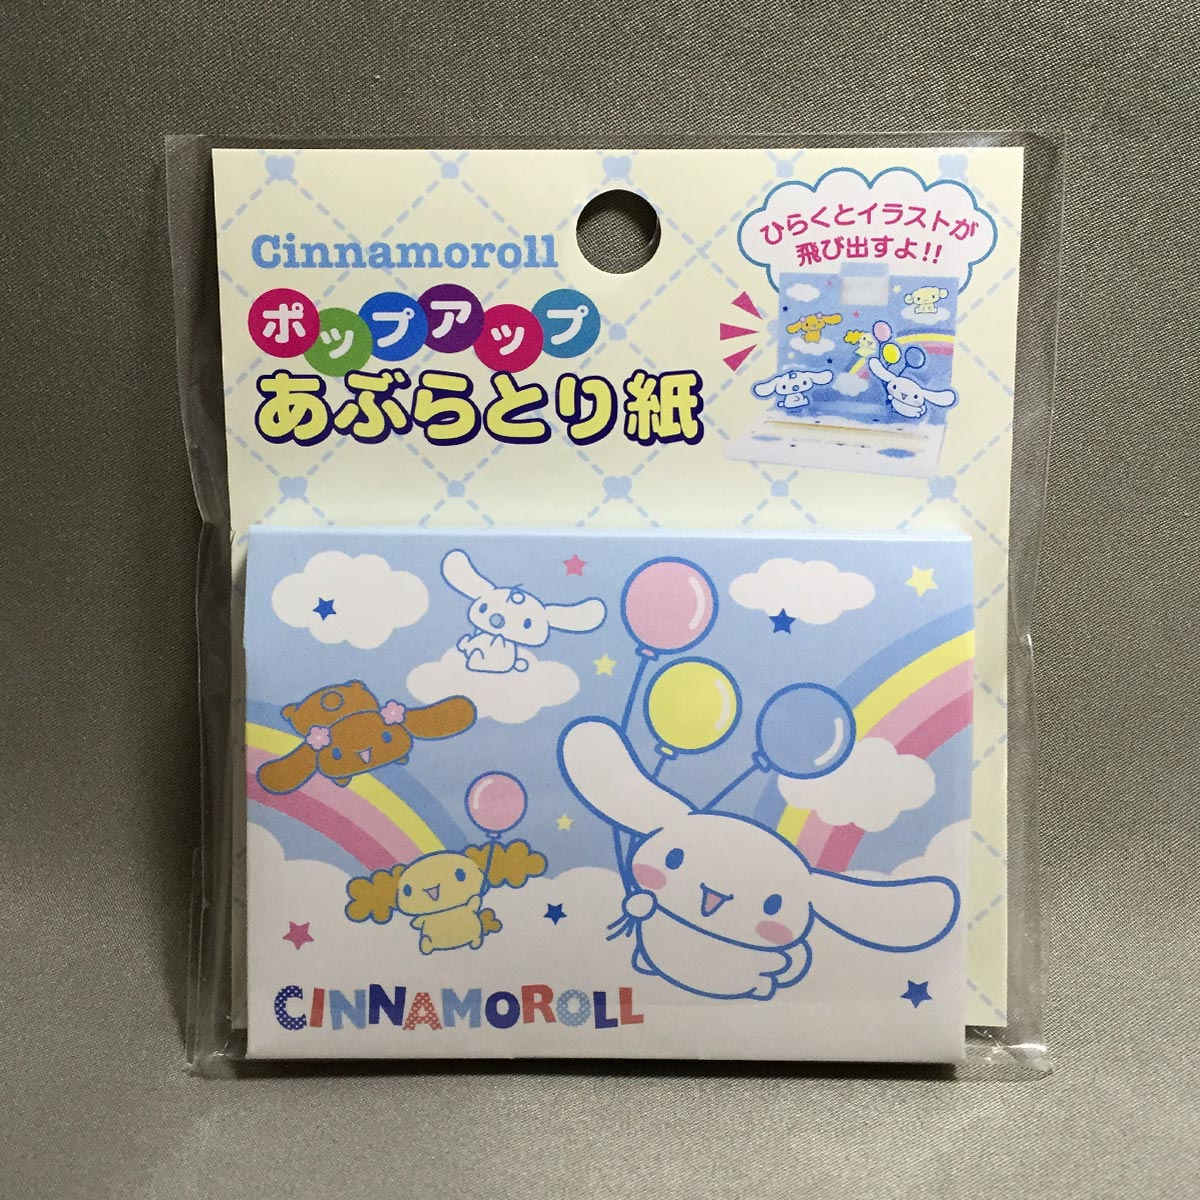 Cinnamoroll Oil Blotting Paper - front packaging